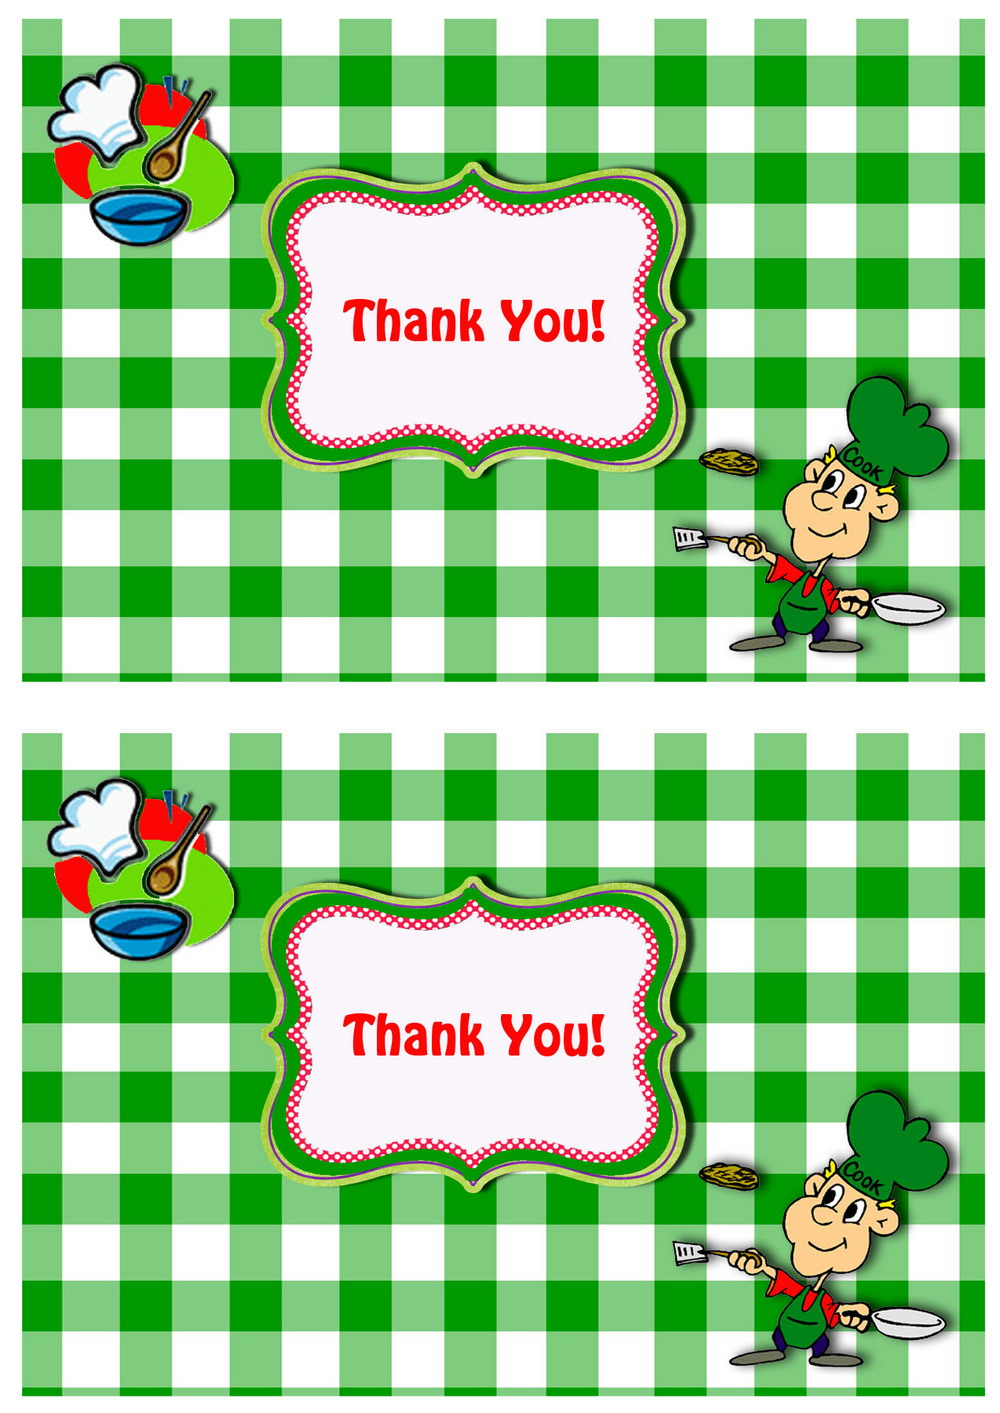 Click Image To Find More Men S Fashion: Cooking And Baking Thank You Cards